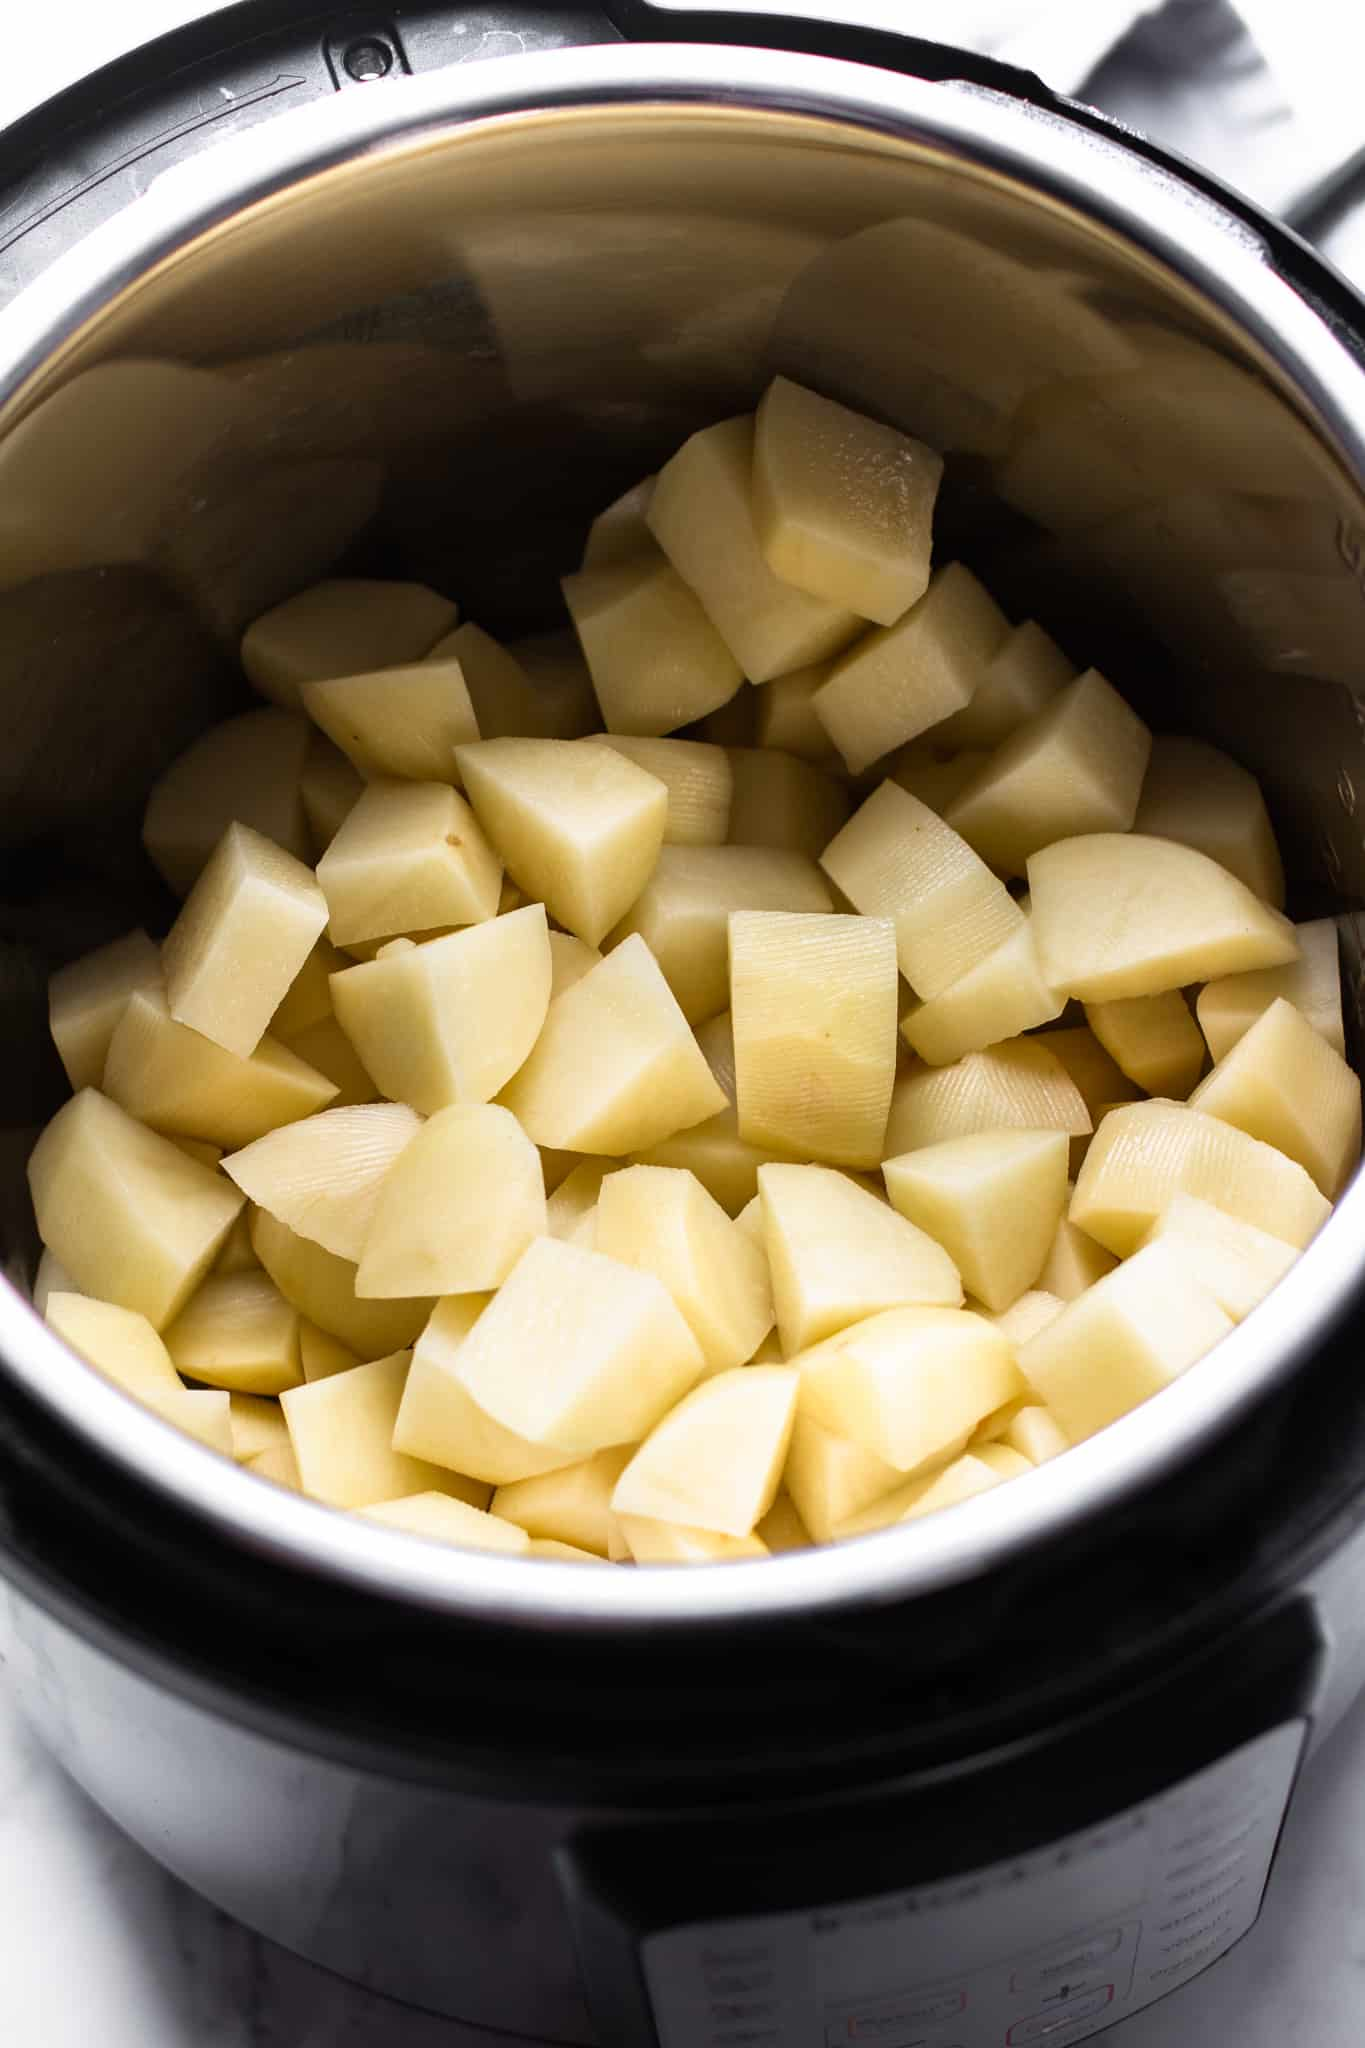 cubed potatoes in an Instant Pot